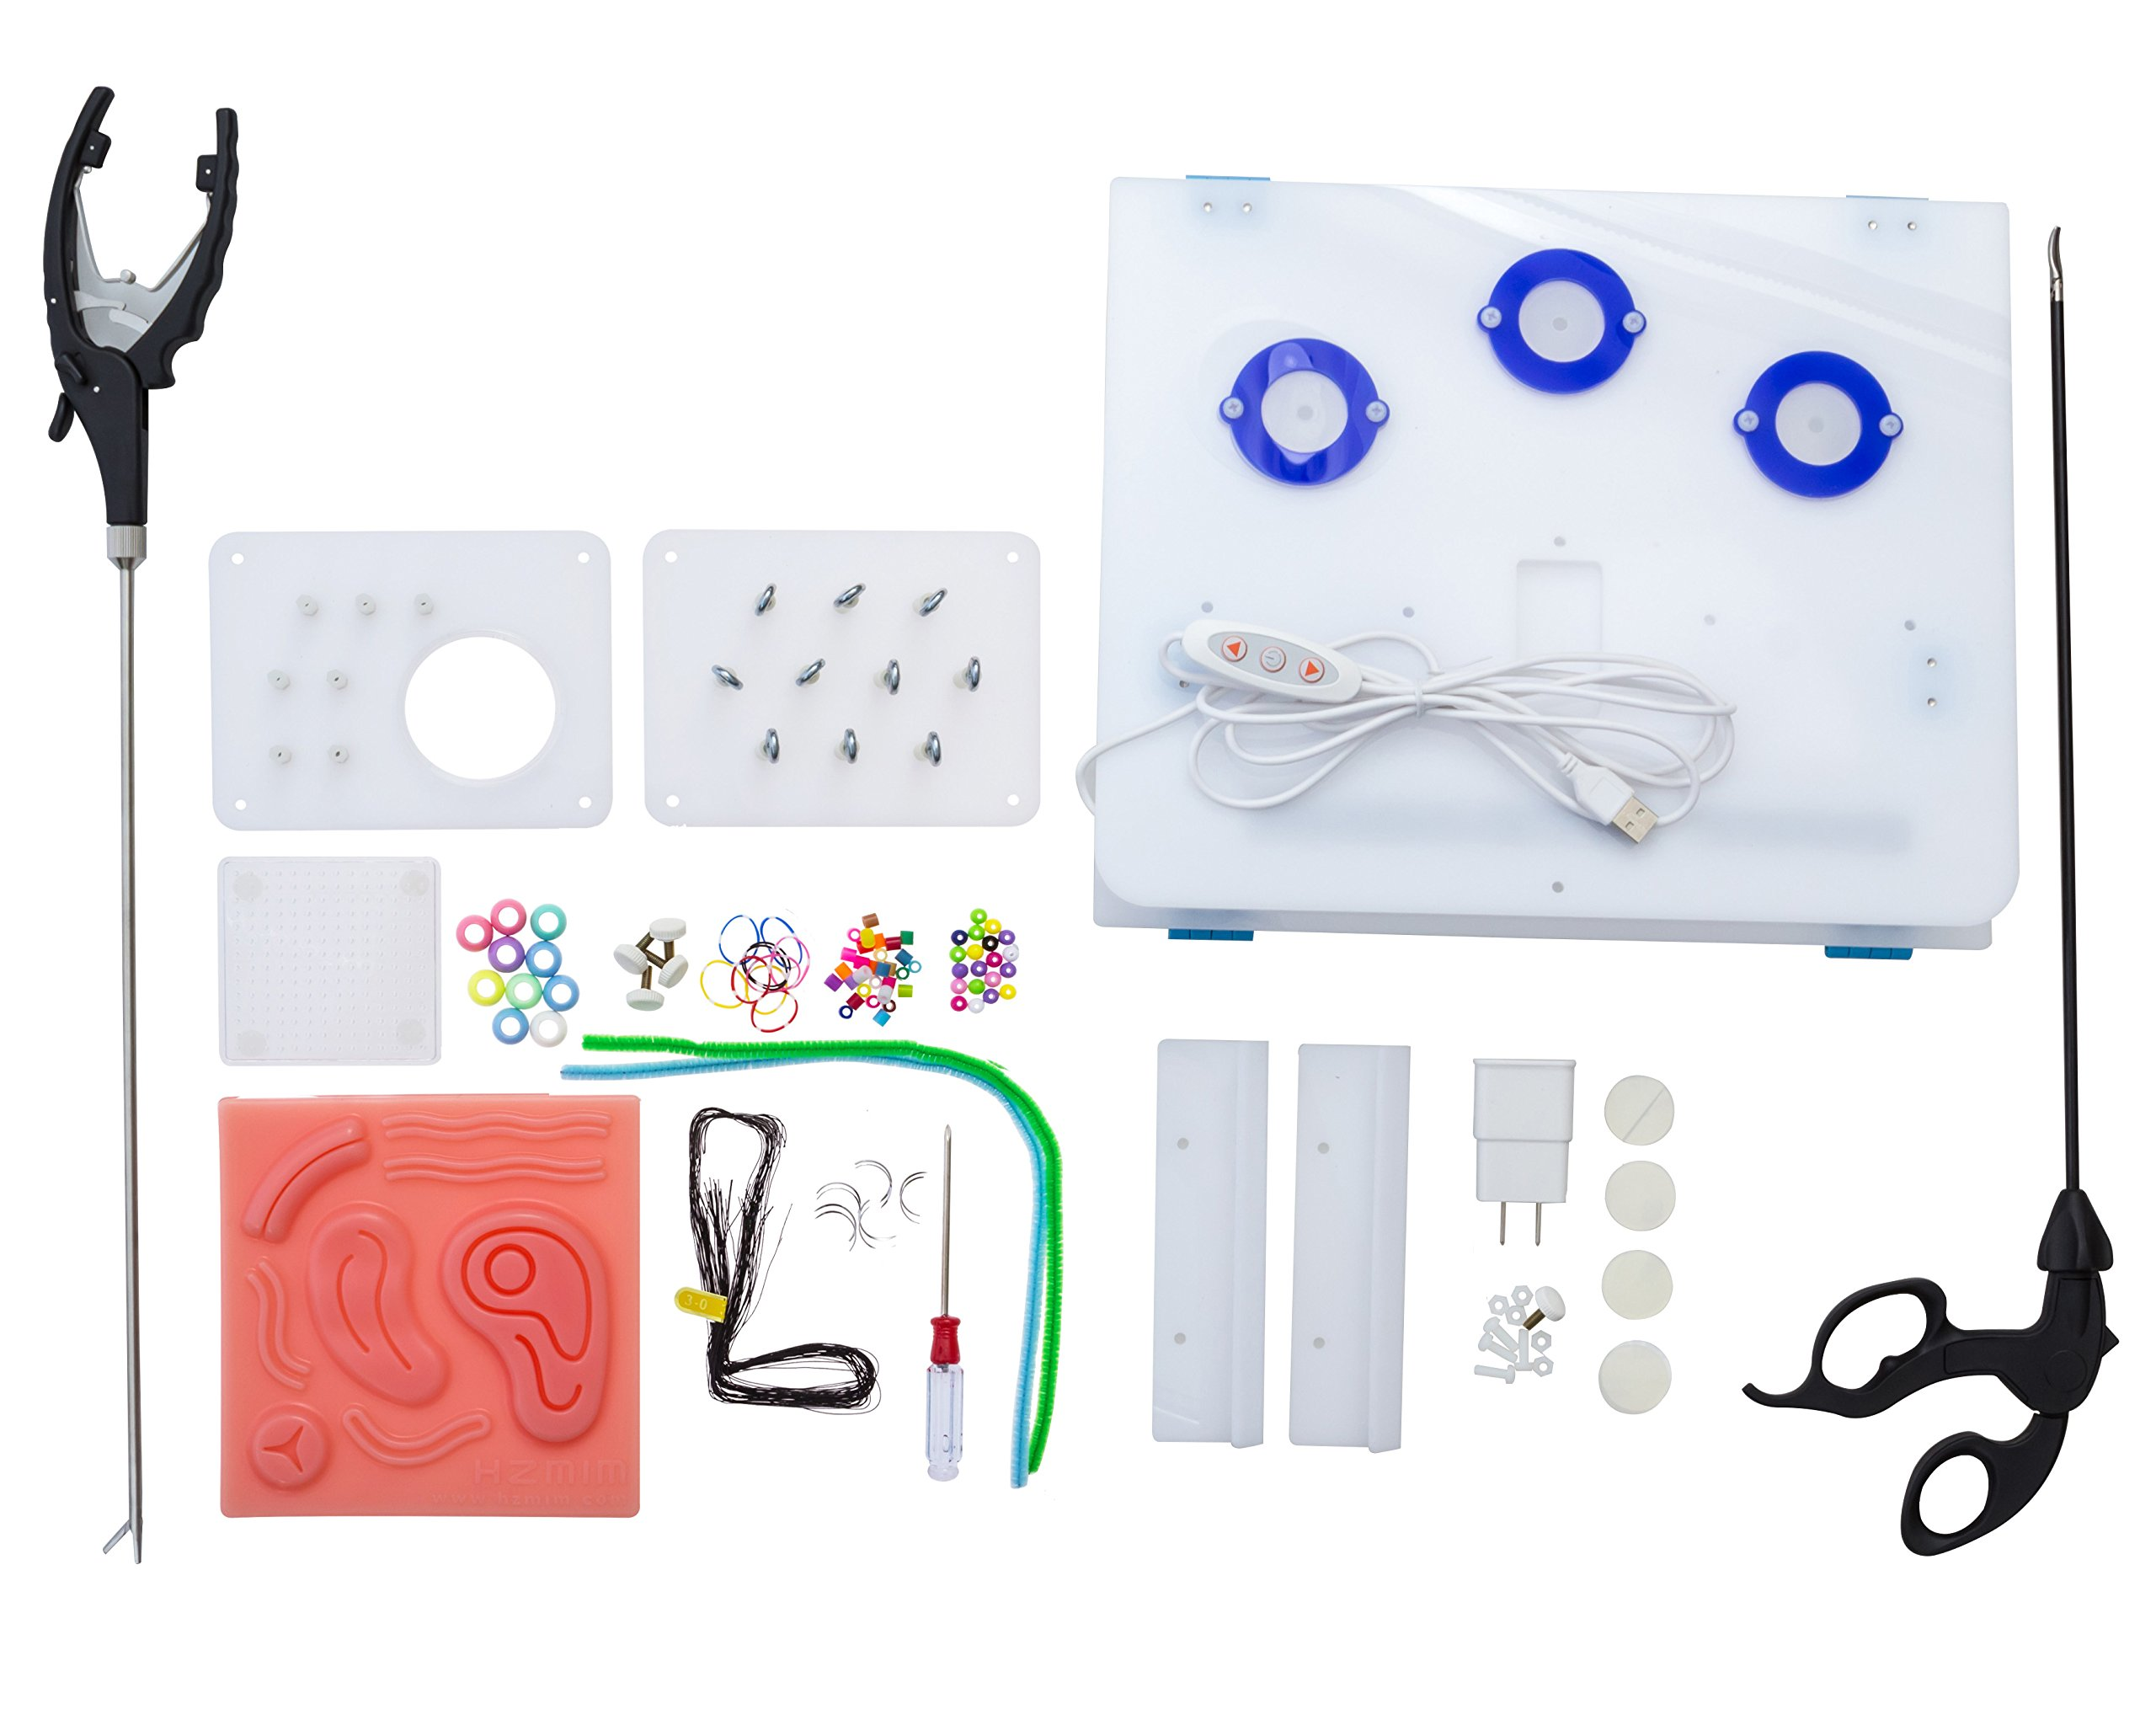 Laparoscopic Trainer Simulator Box kit for Student Training Use Includes Instruments and Accessories to Practice with  Includes Training Video